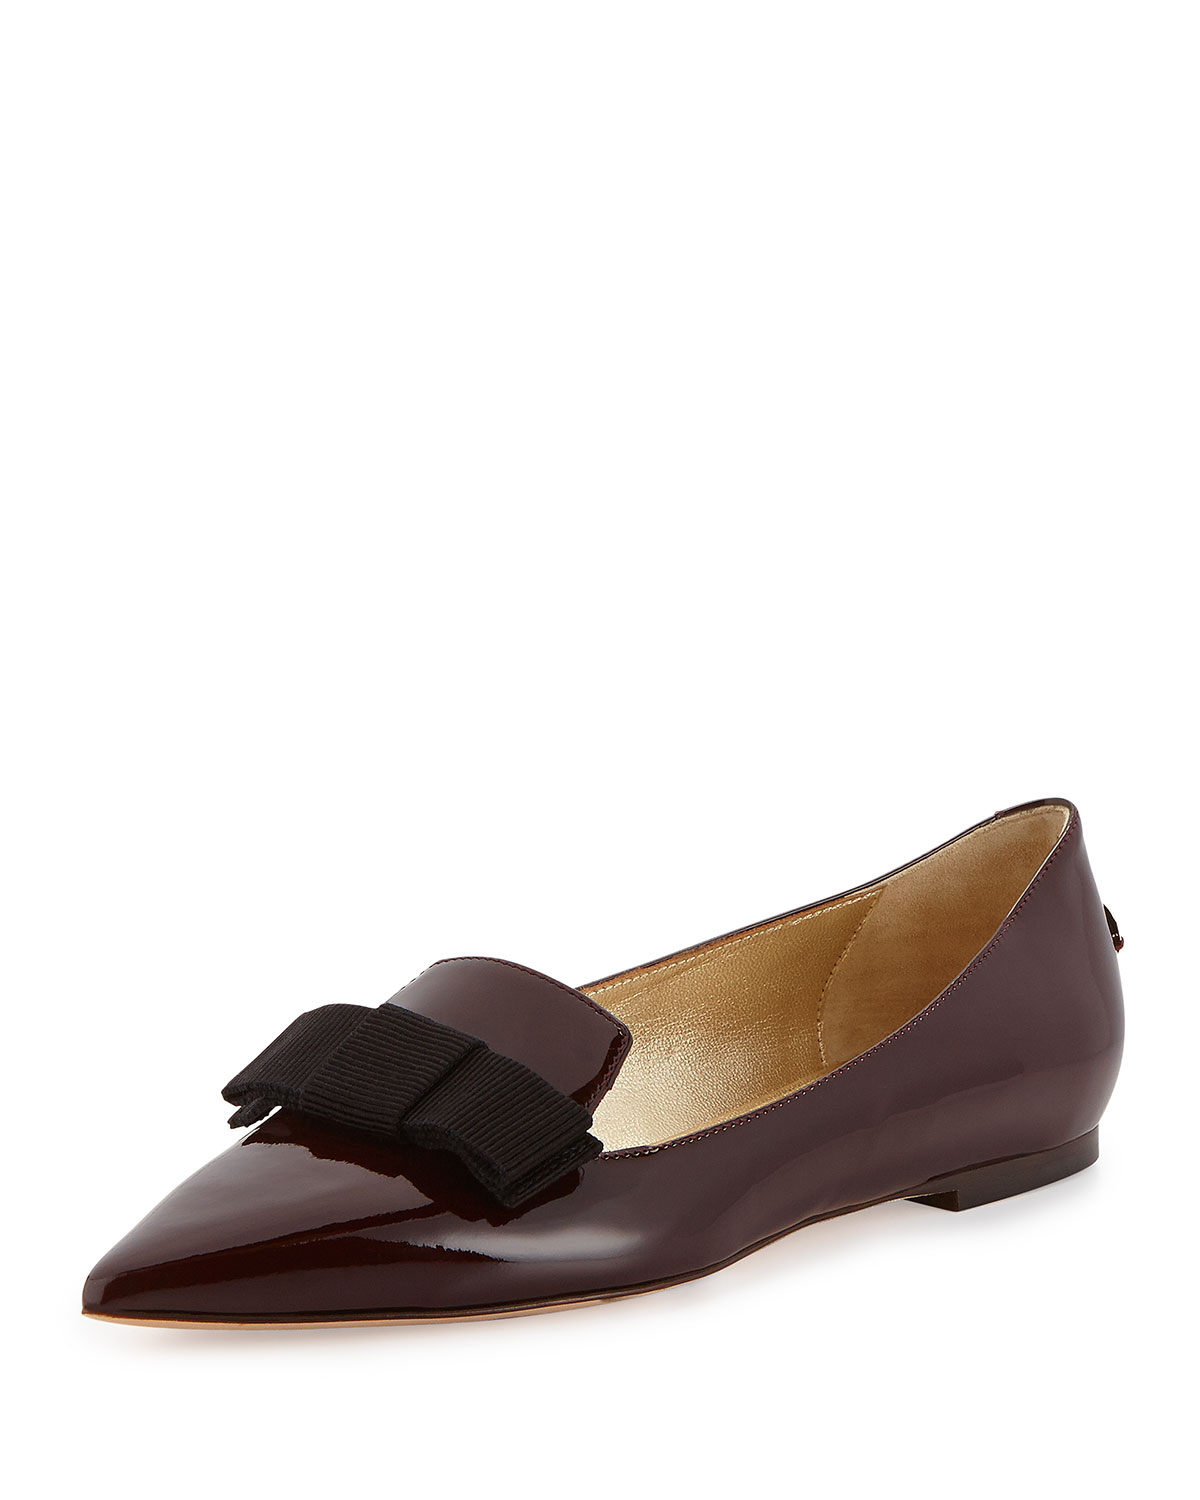 31aee5ea69b Jimmy Choo Gala Patent Bow Loafer